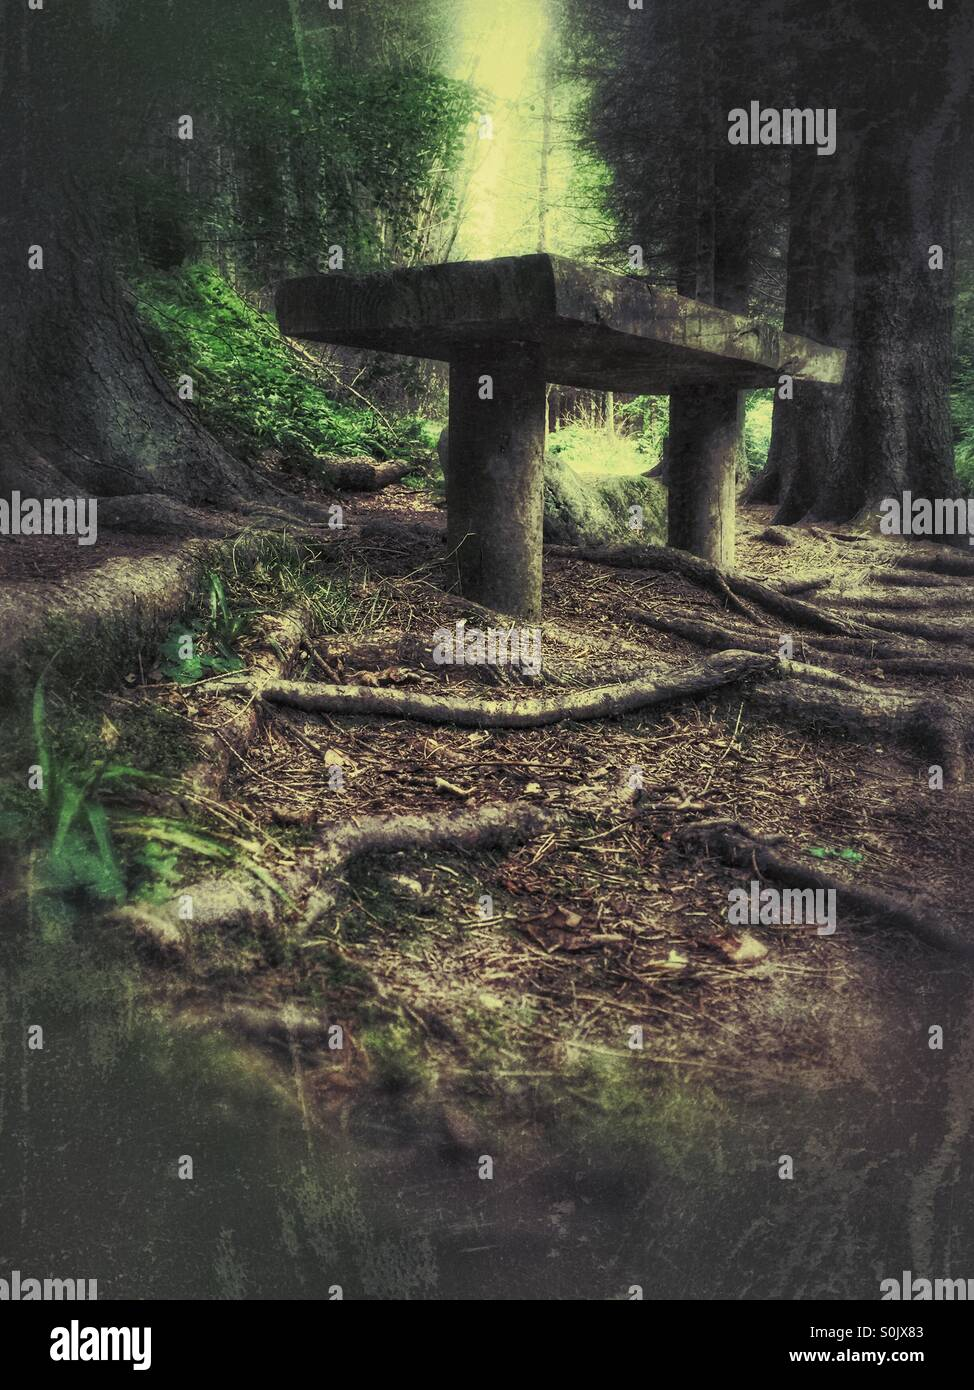 'Somewhere to sit', a wooden bench situated deep in the forest - Stock Image